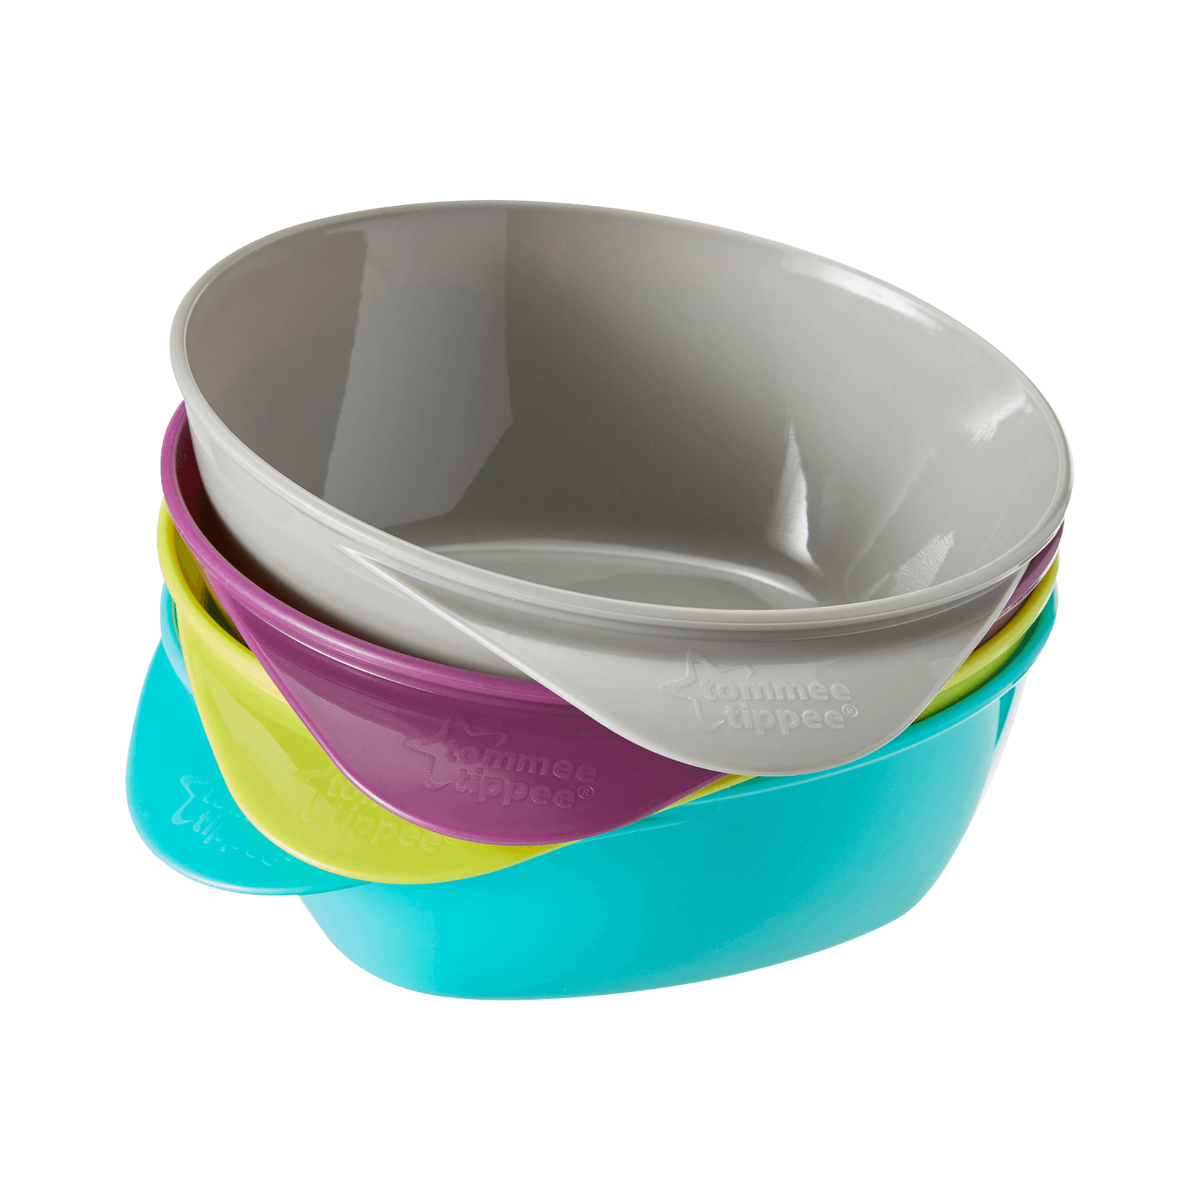 Pack Of 2 Colour May Vary Tommee Tippee Easy Scoop Bowls With Lid//spoon